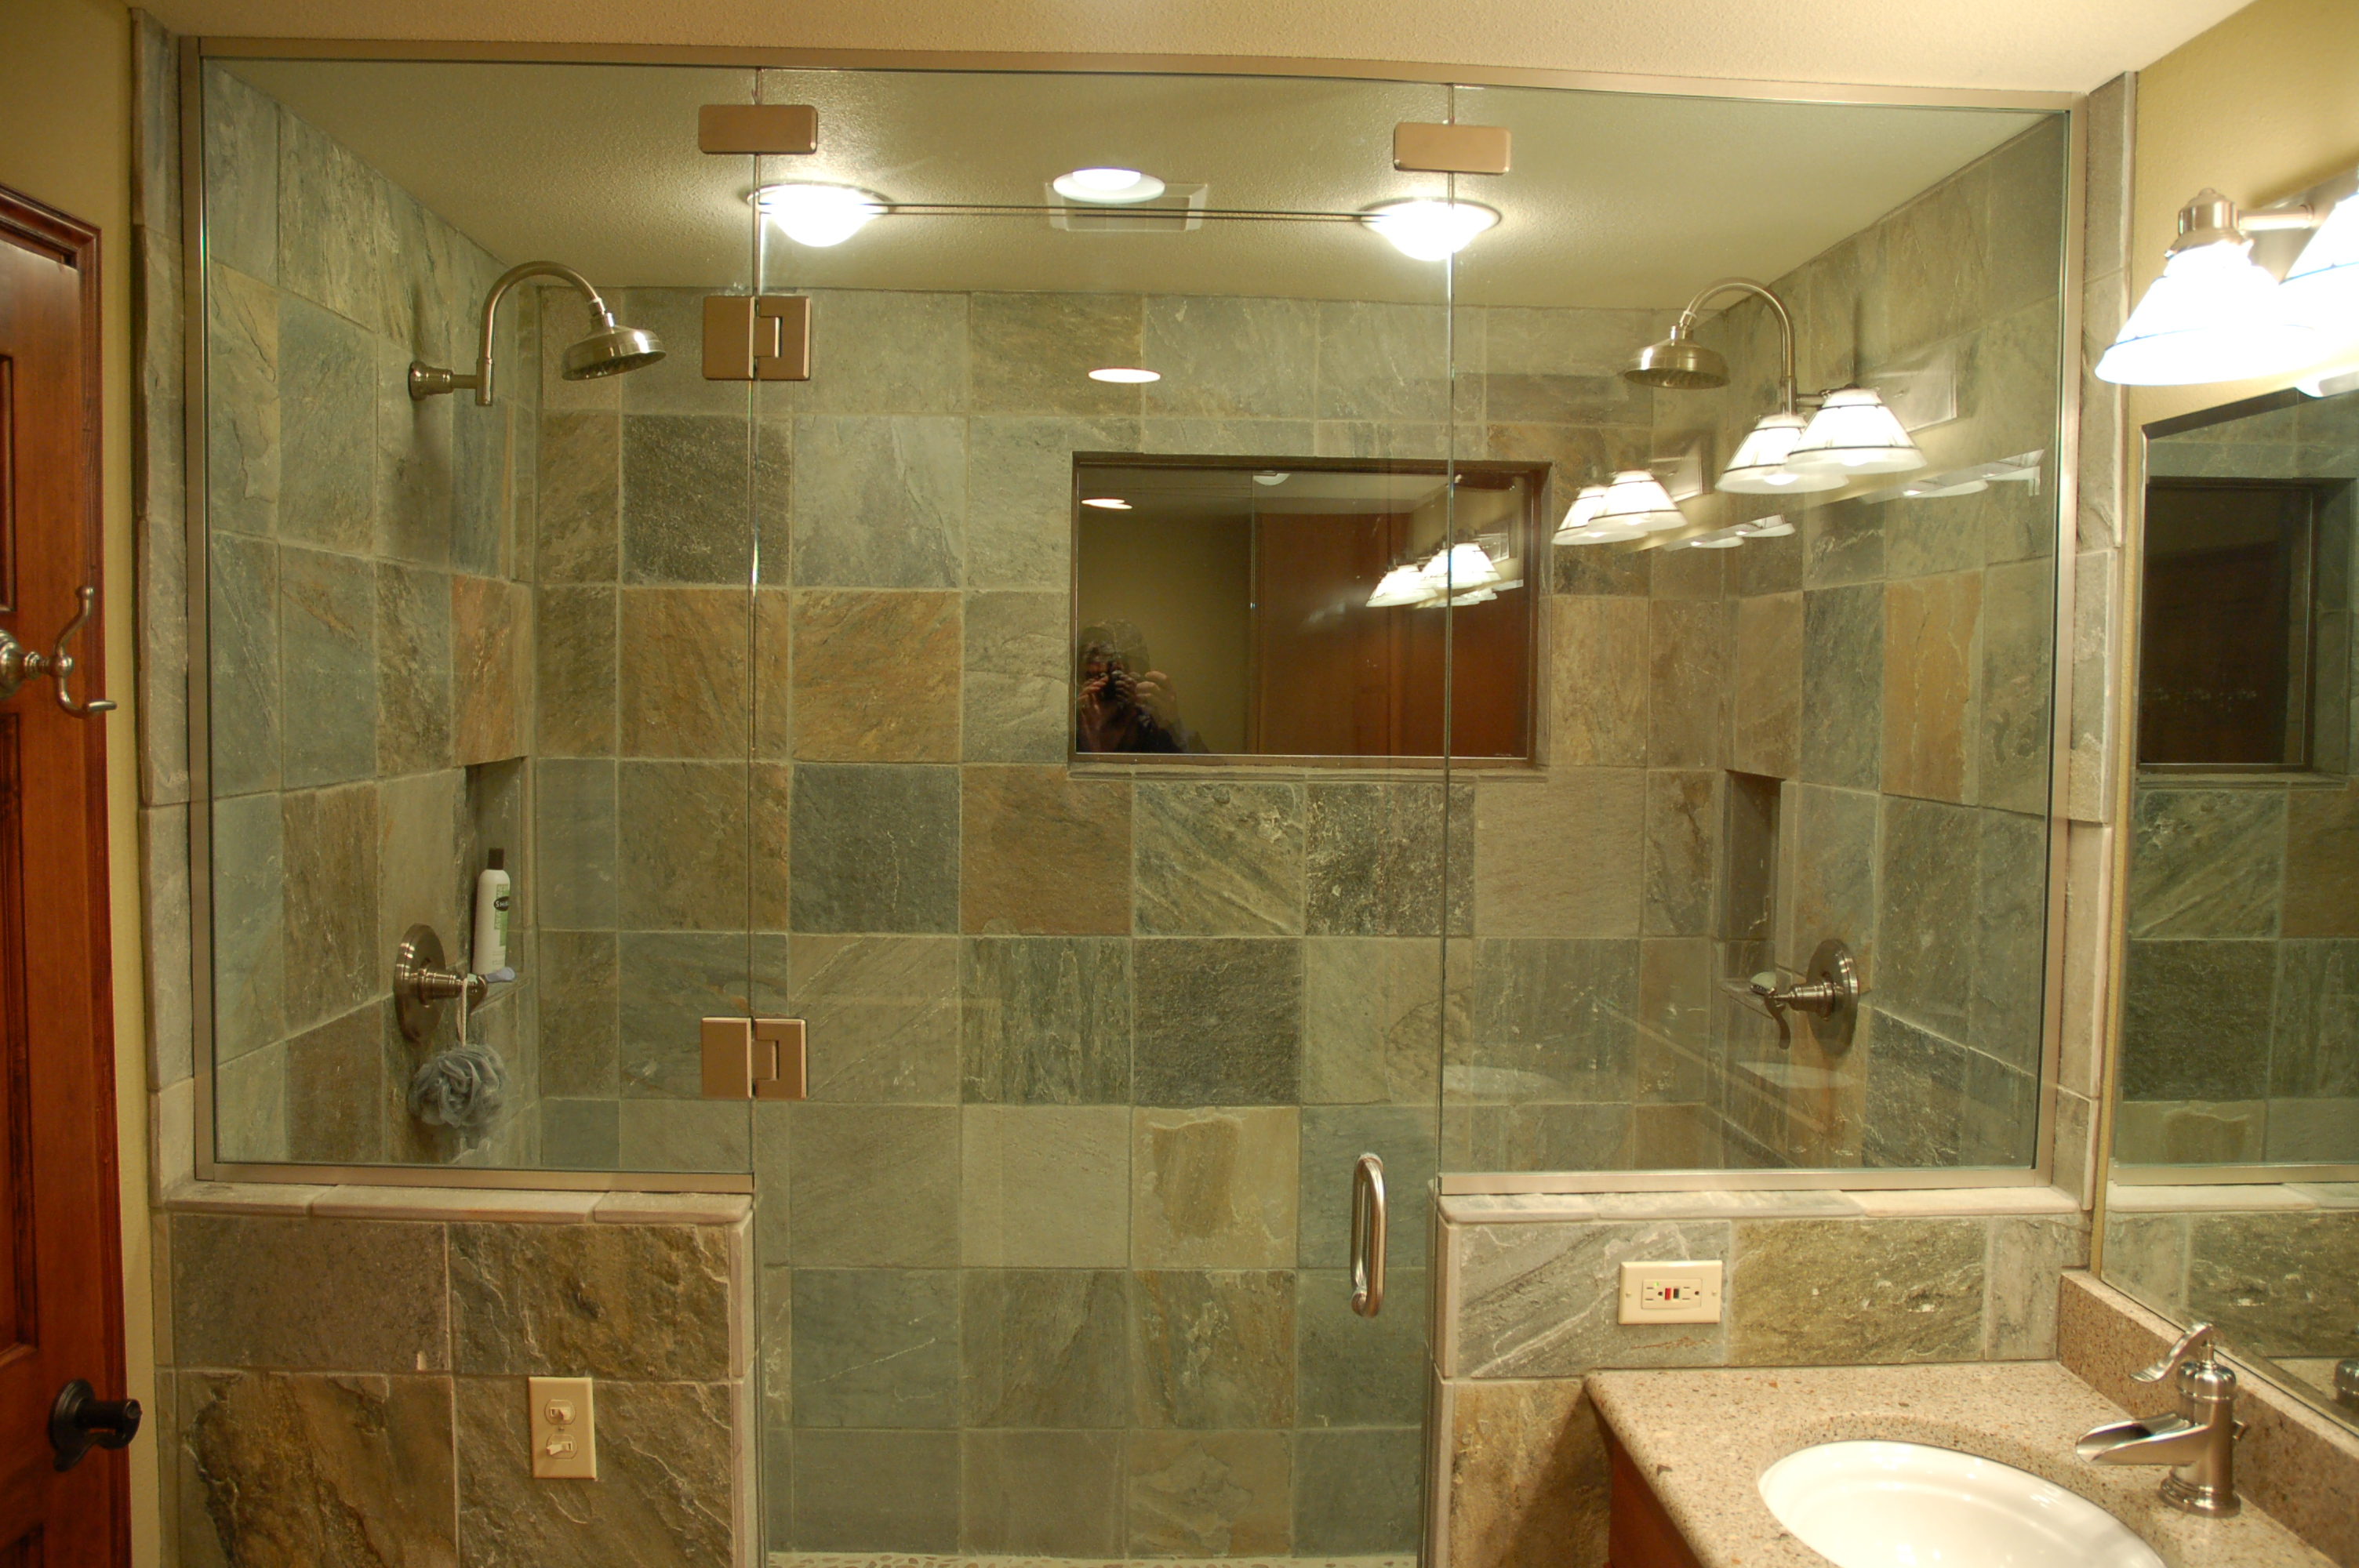 Slate bathroom tile benefits bathroom slate tiles Bathroom tile pictures gallery